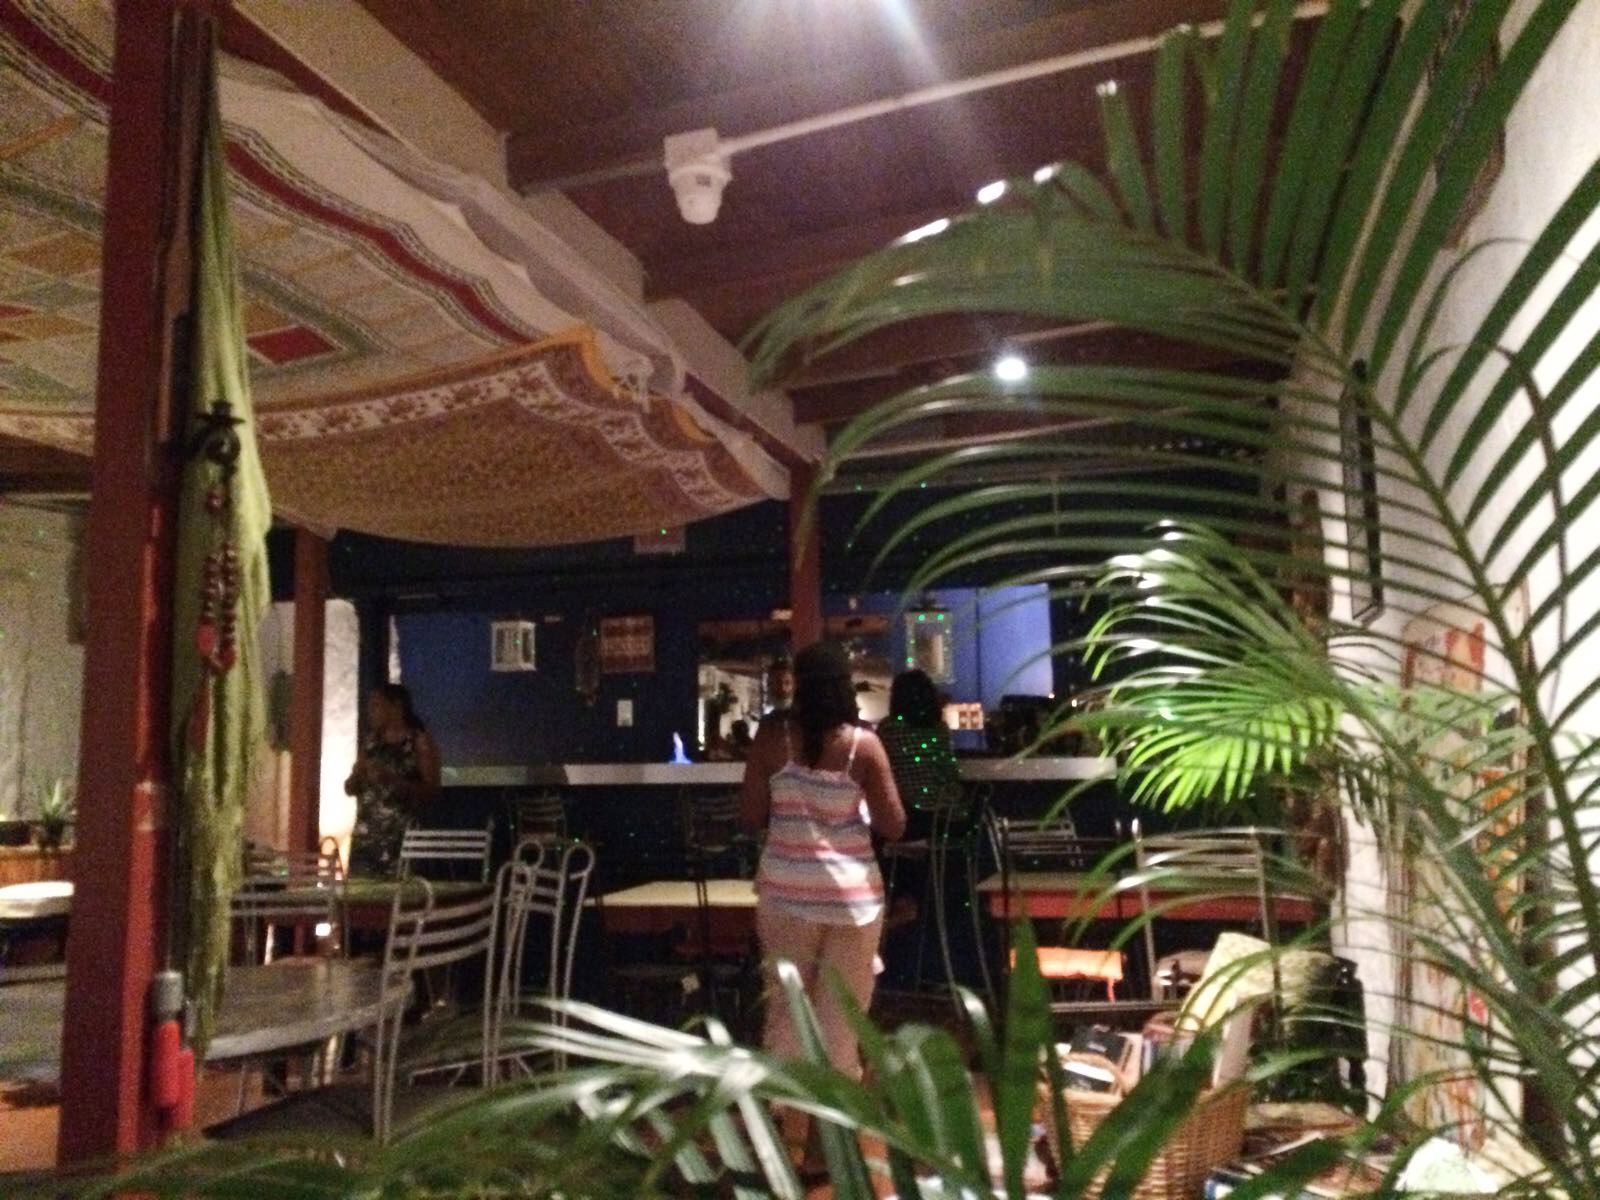 Local vibe at rustic restaurant in Woodbrook, Port of Spain, Trinidad. Images by Dr Ian Bethell-Bennett